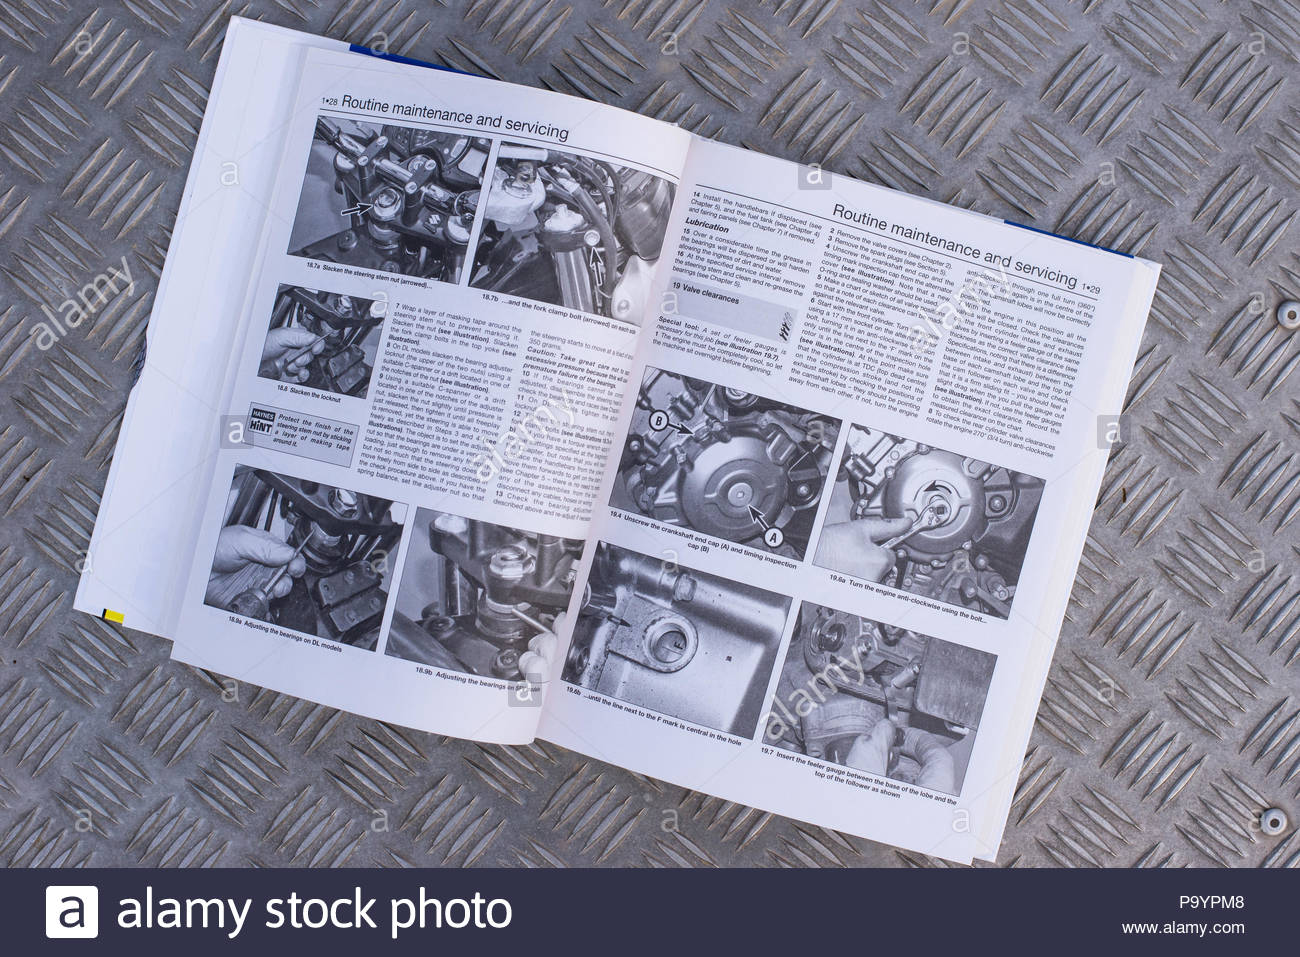 guide book stock photos guide book stock images page 5 alamy